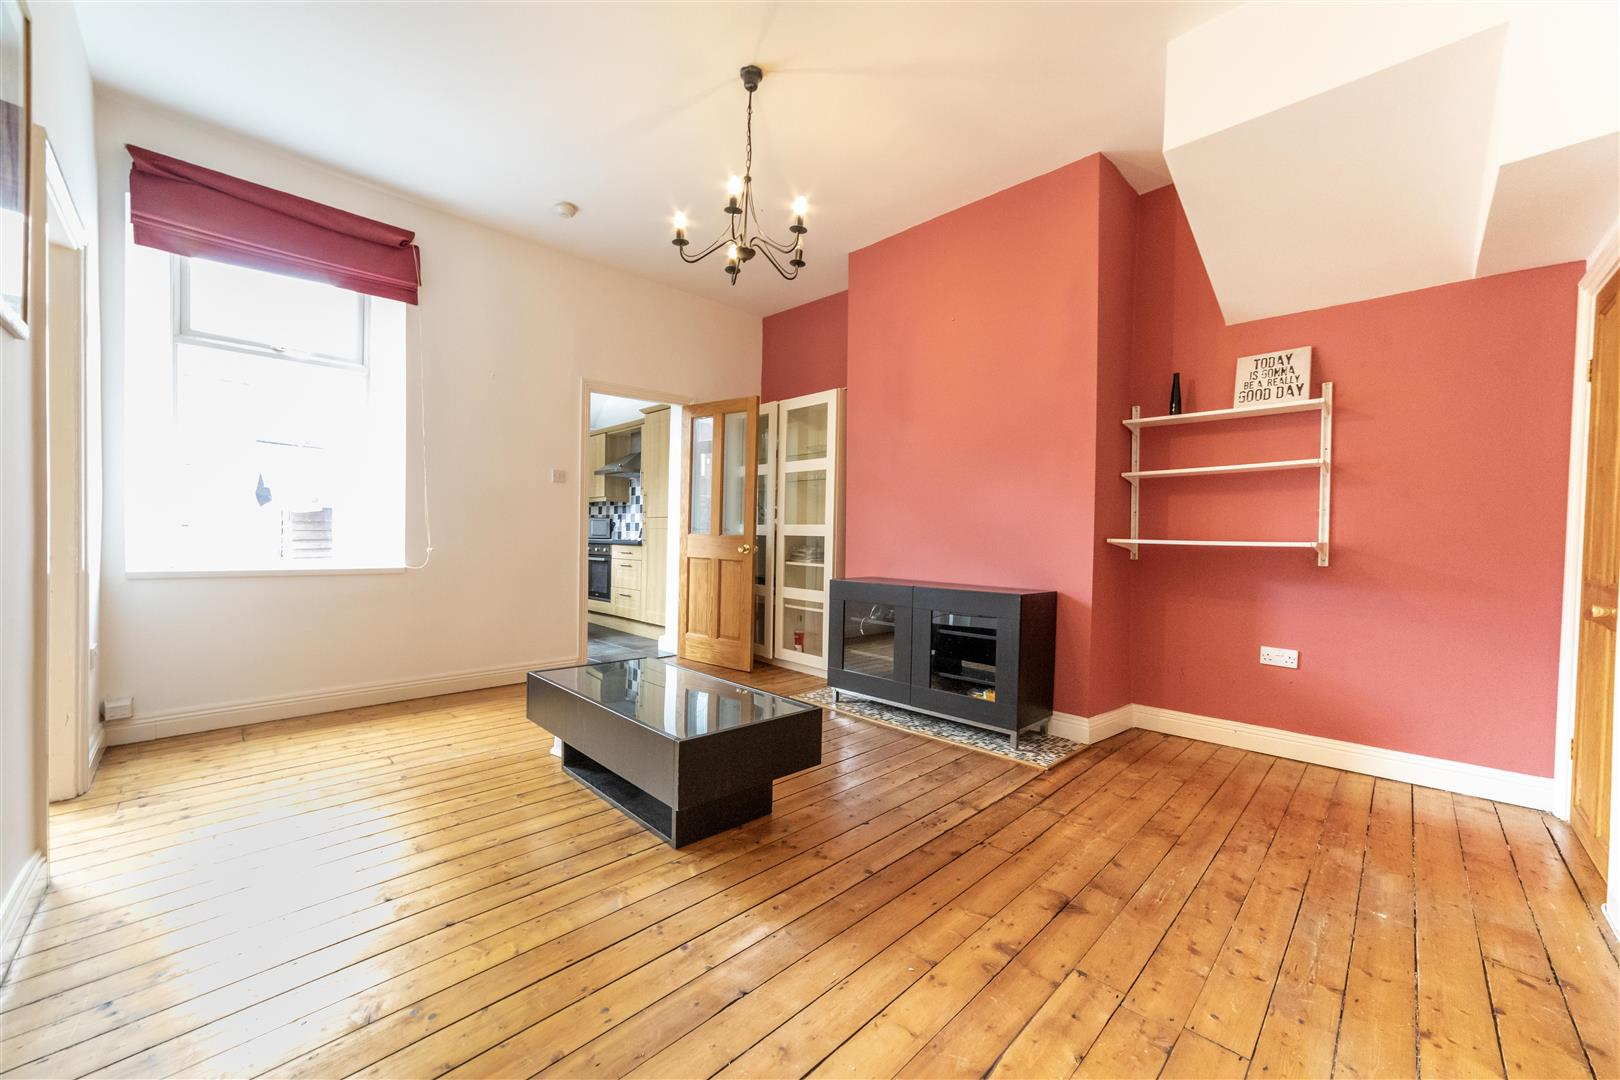 2 bed flat to rent in Newcastle Upon Tyne, NE2 1RB  - Property Image 1